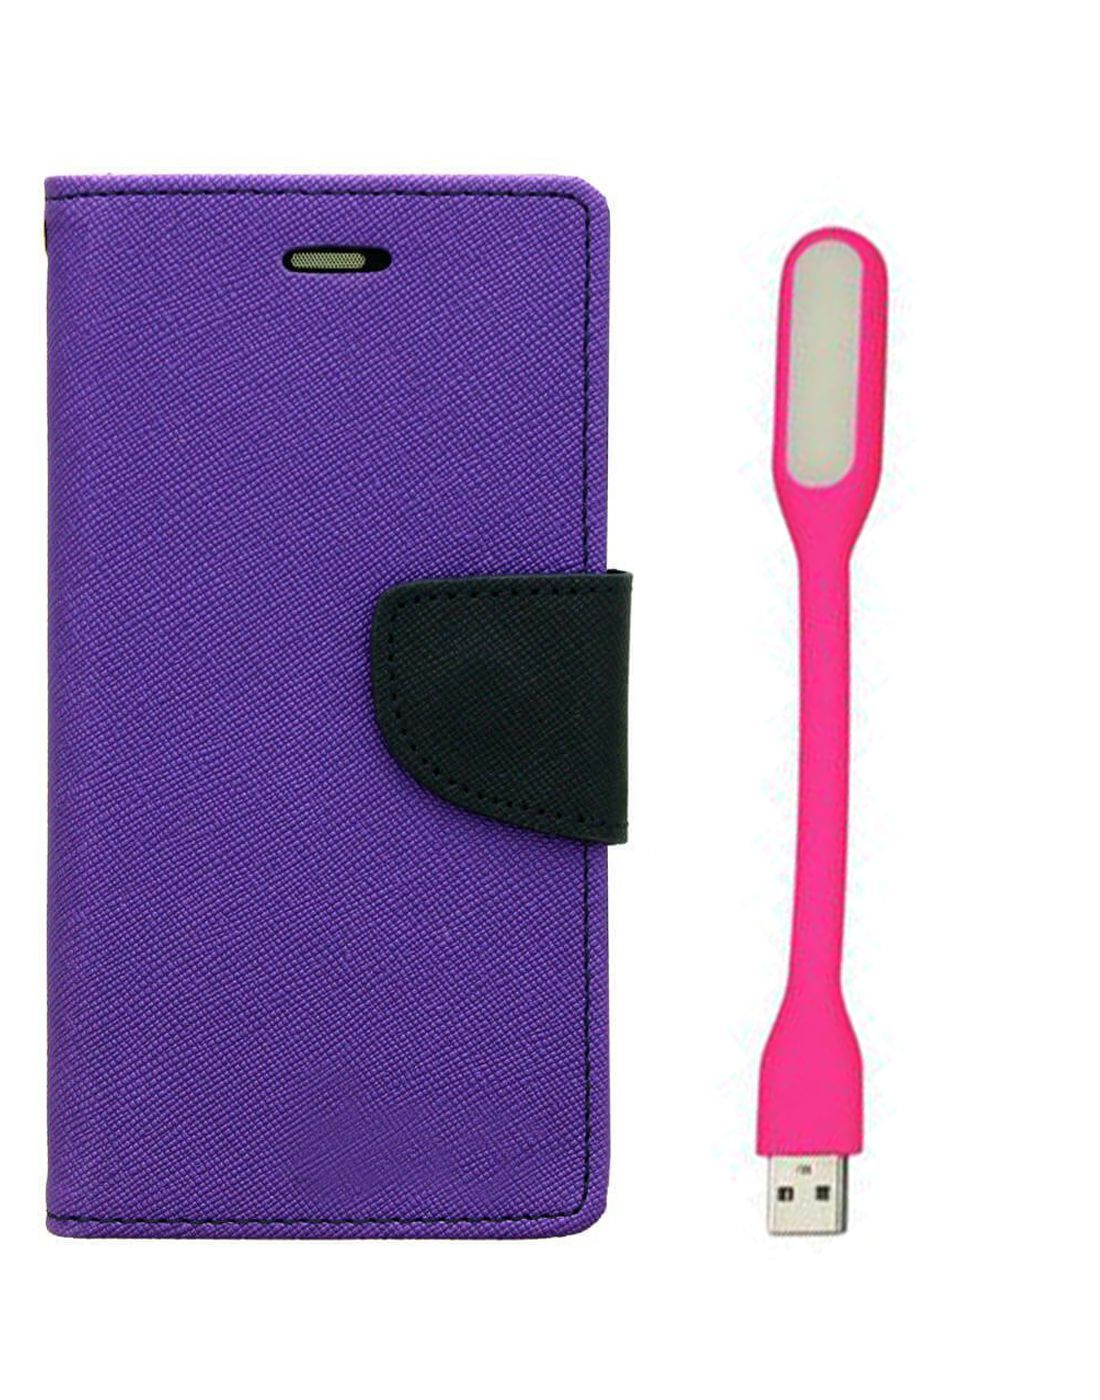 Wallet Flip Case Back Cover For Lenovo A6000 - (Purple) + Flexible Mini LED Stick Lamp Light By Style Crome